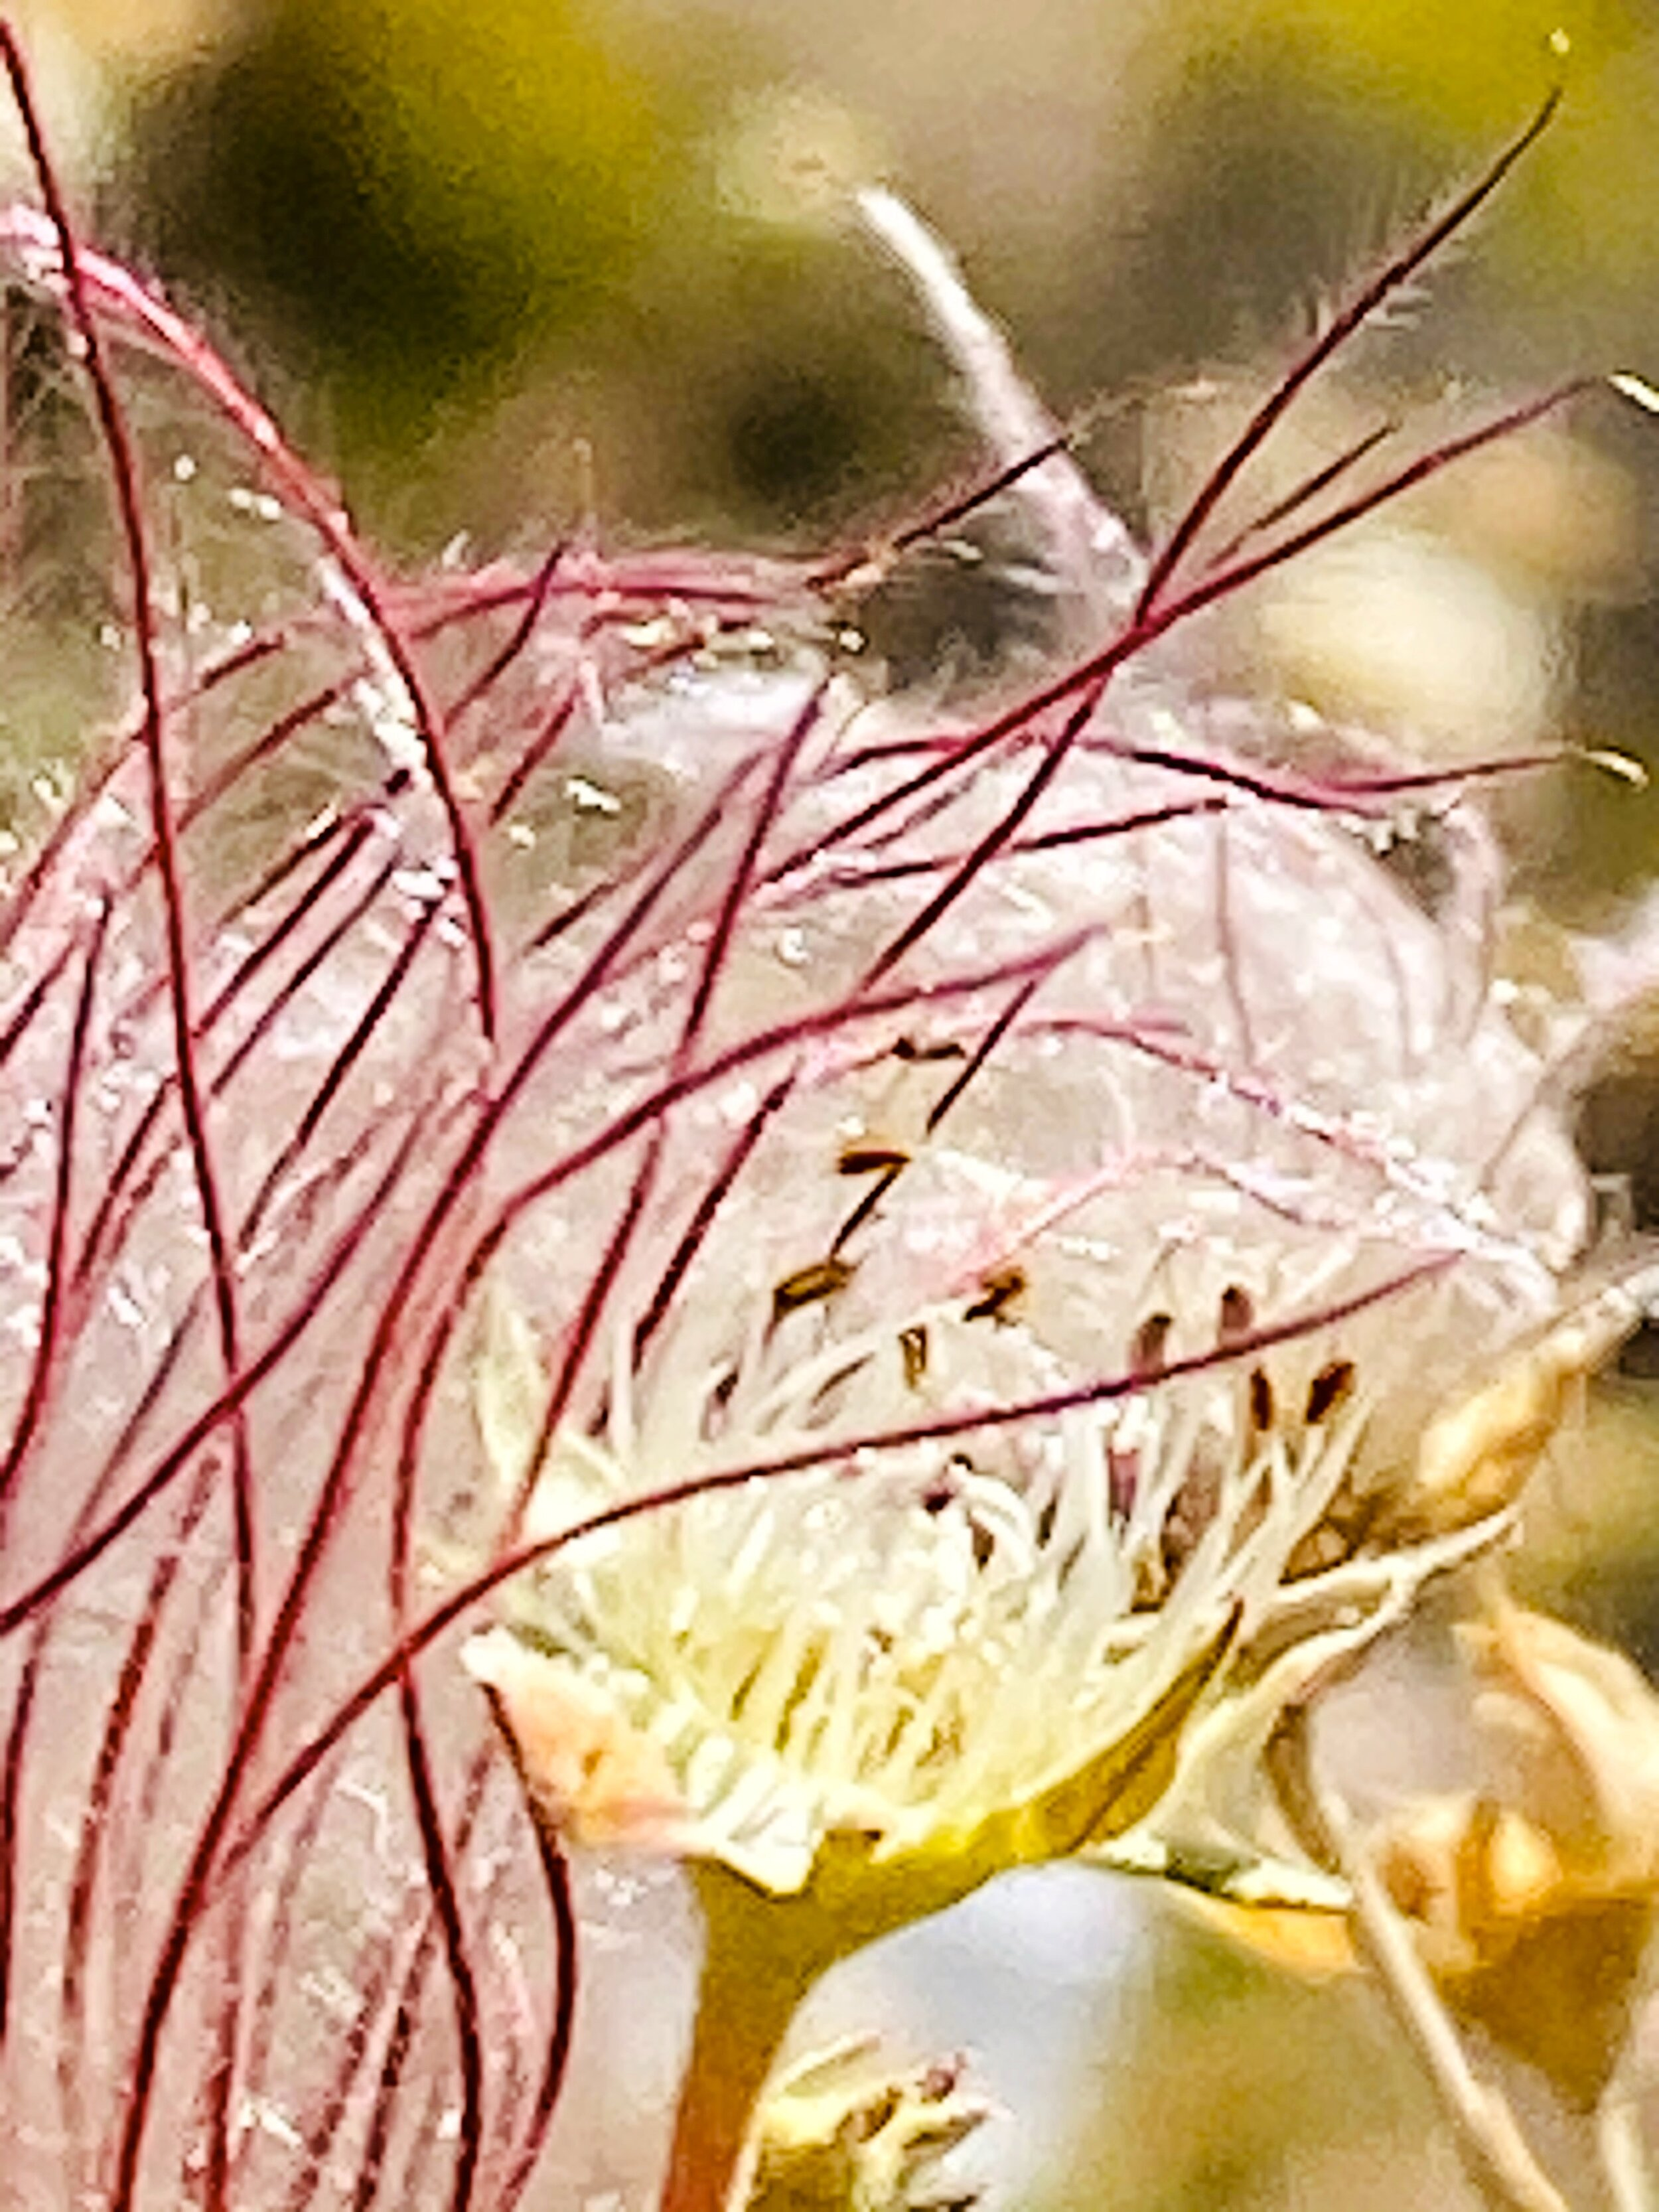 """Apache Plume - """"The ovary of the flower remains after the white petals fall away, leaving many plumelike lavender styles, each 3 to 5 centimeters long."""""""